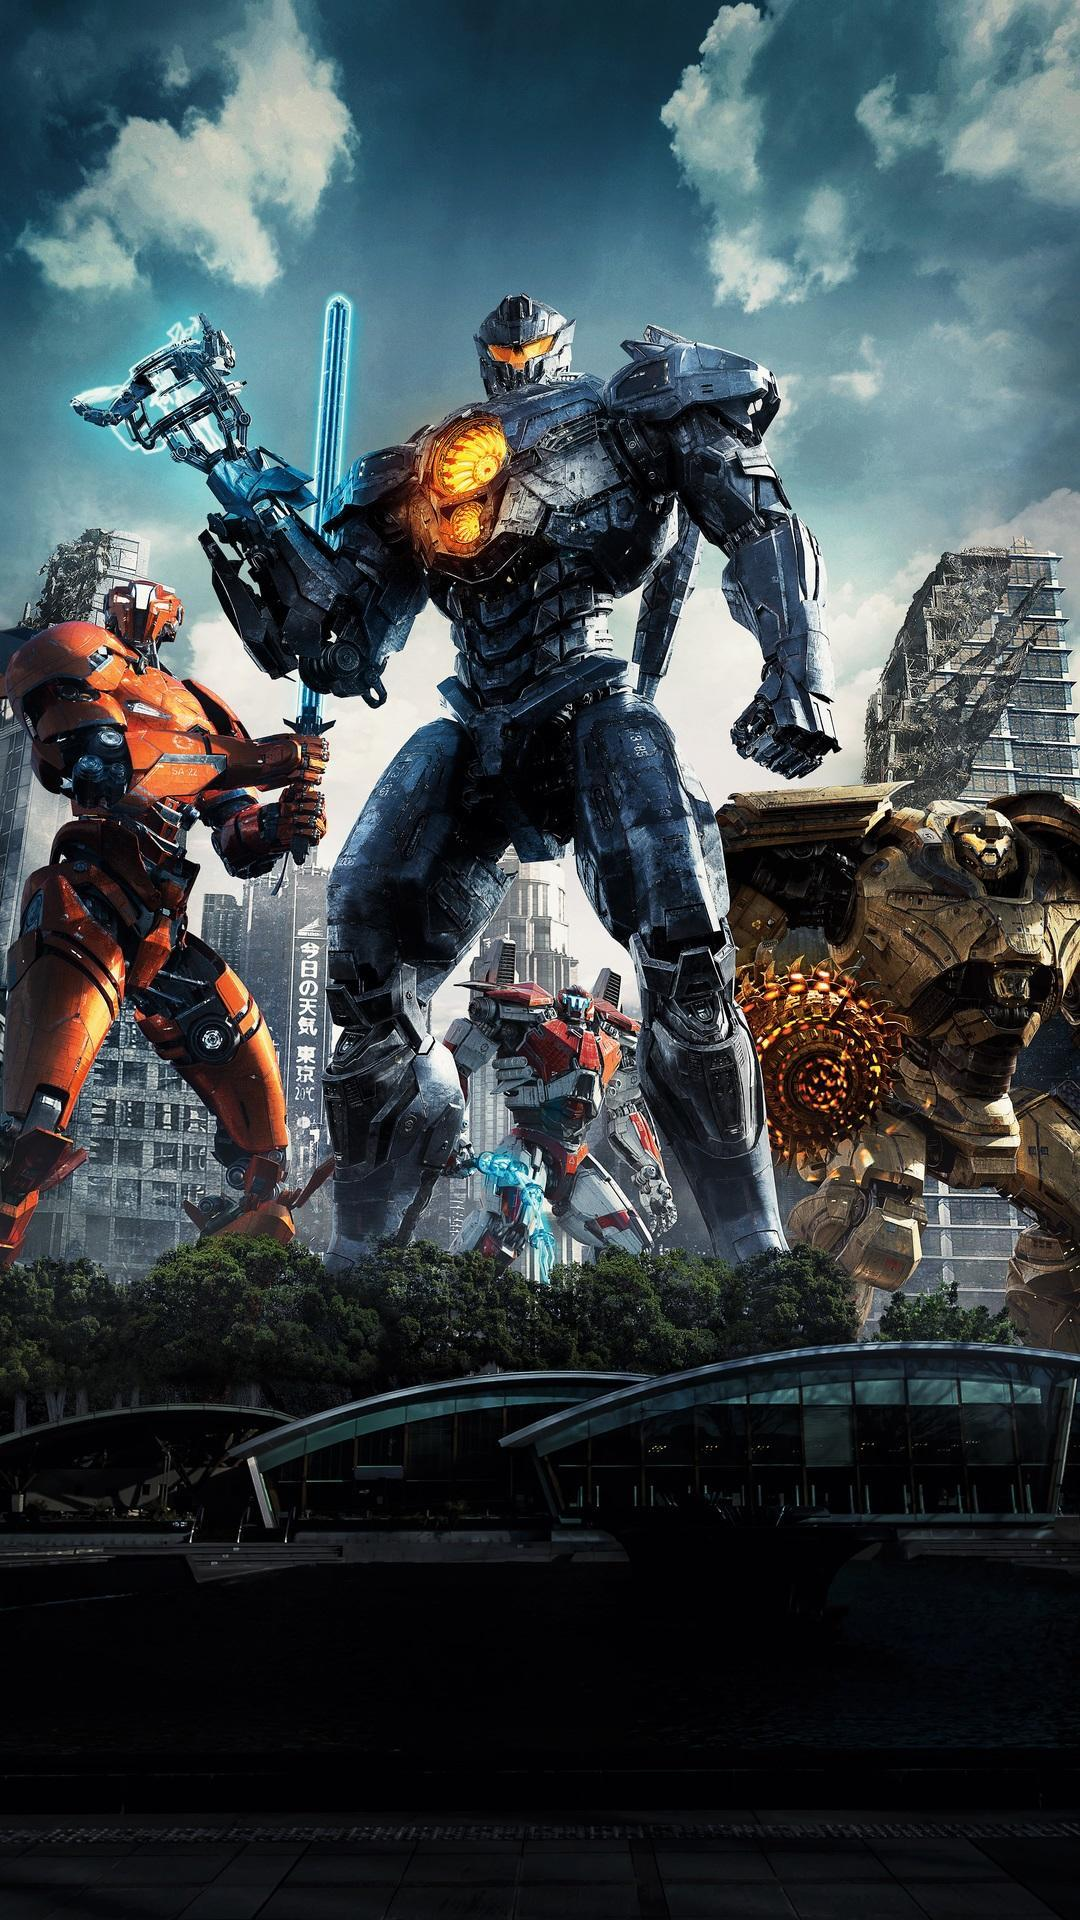 Pacific Rim 4k Hd Wallpaper Offline For Android Apk Download